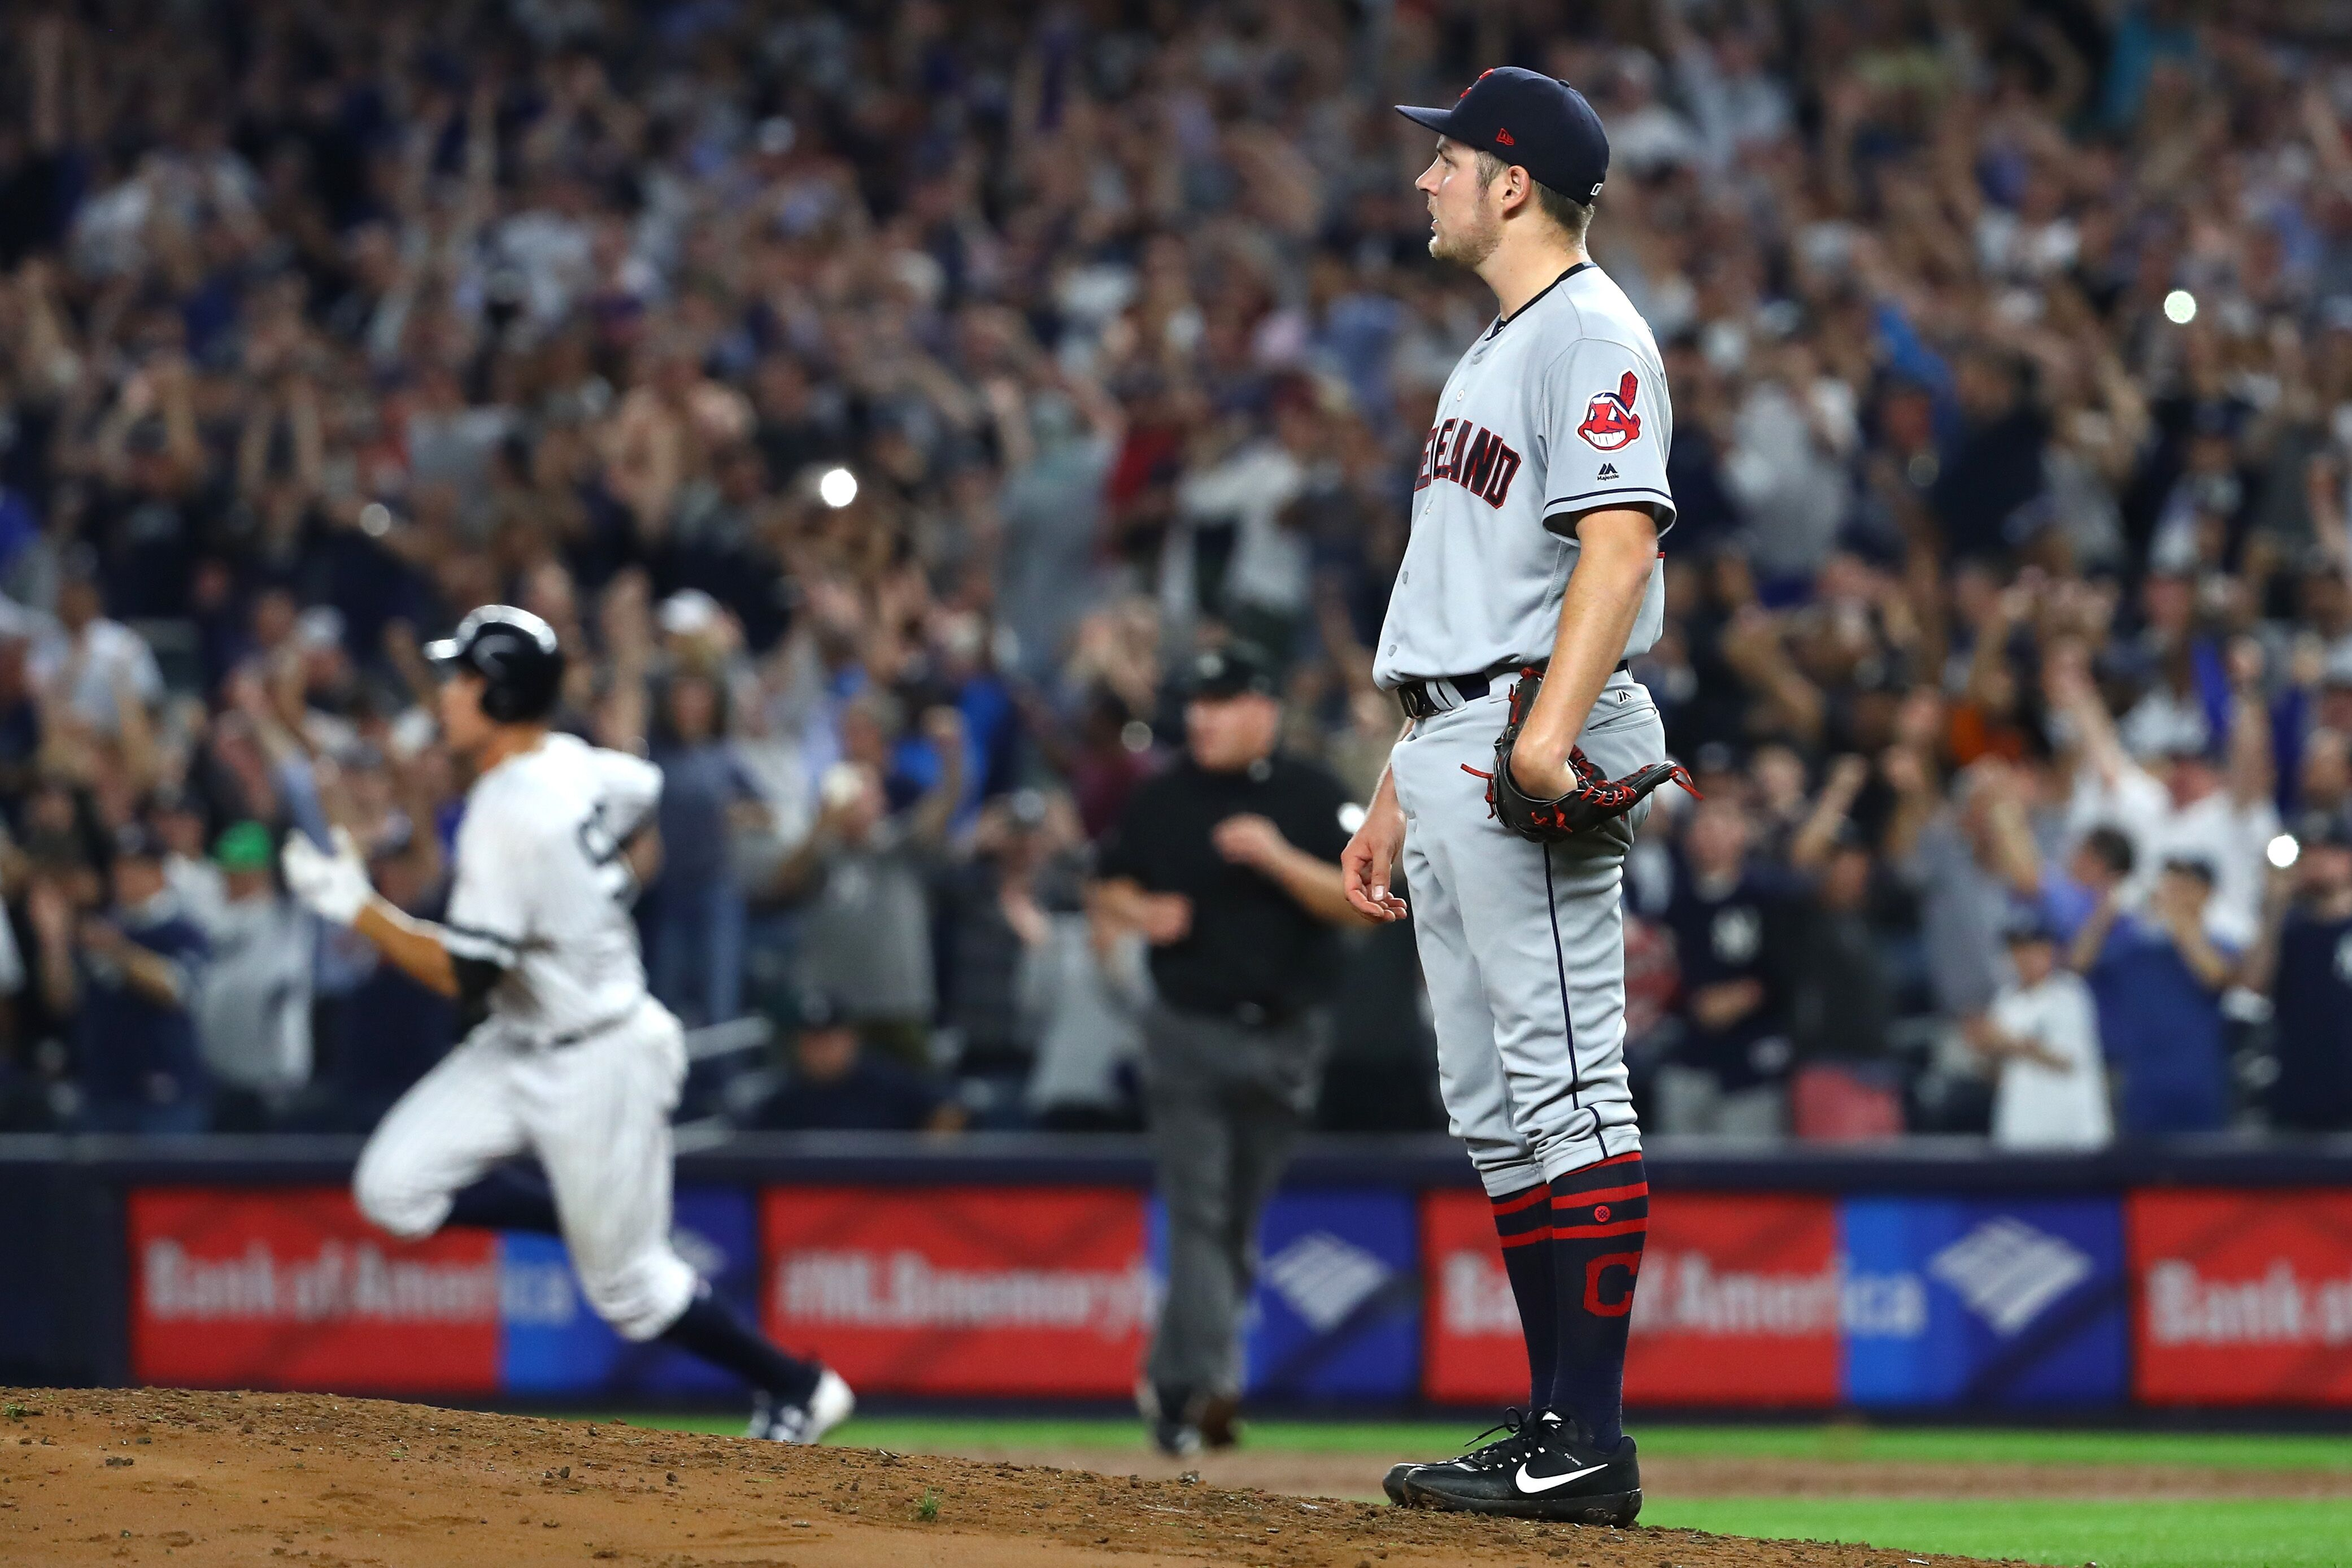 859531478-divisional-round-cleveland-indians-v-new-york-yankees-game-four.jpg